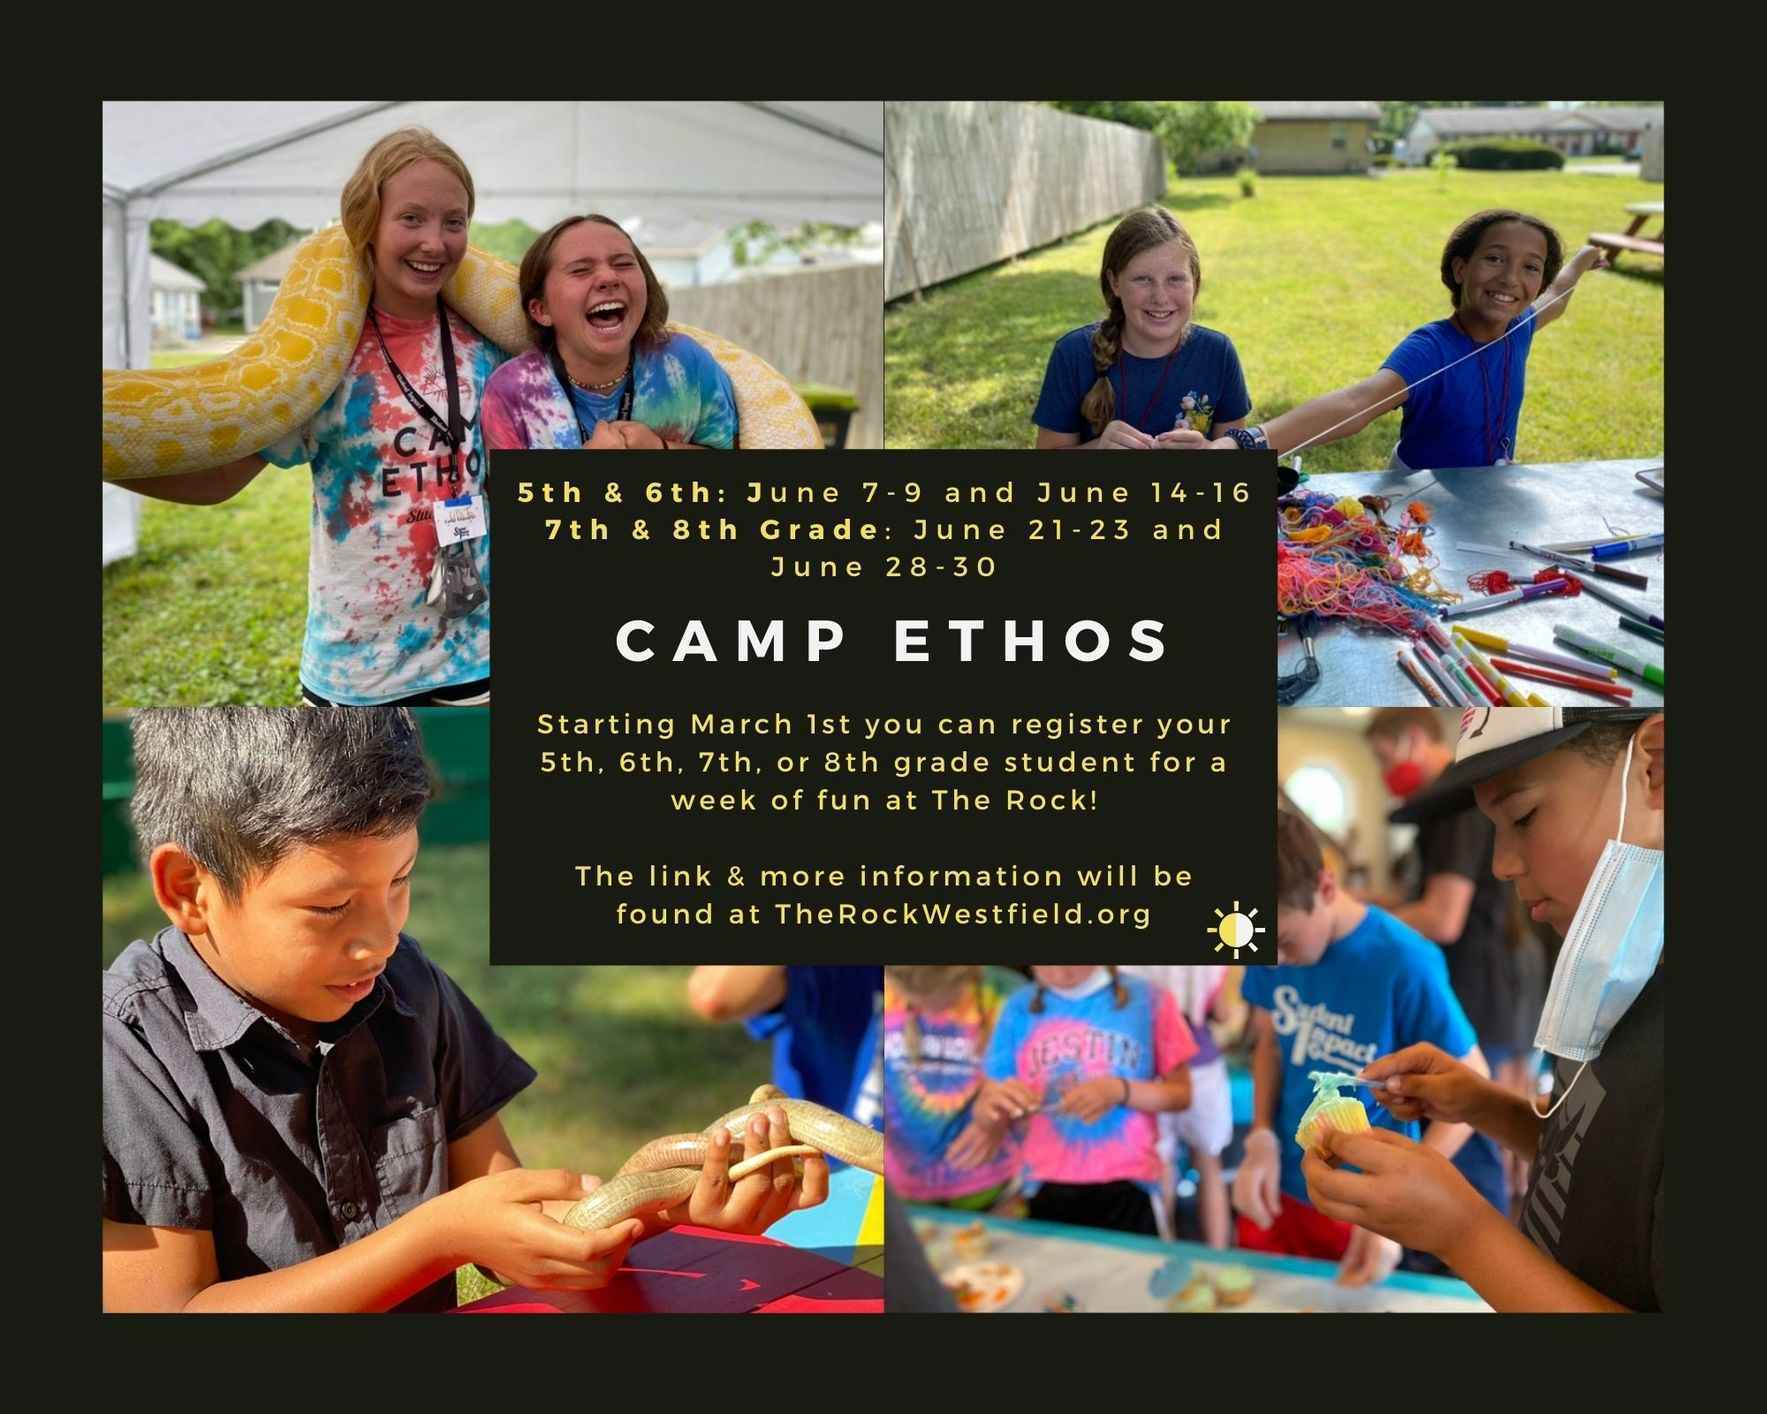 Camp Ethos June 14-16, 2021 Incoming 5th and 6th Graders image